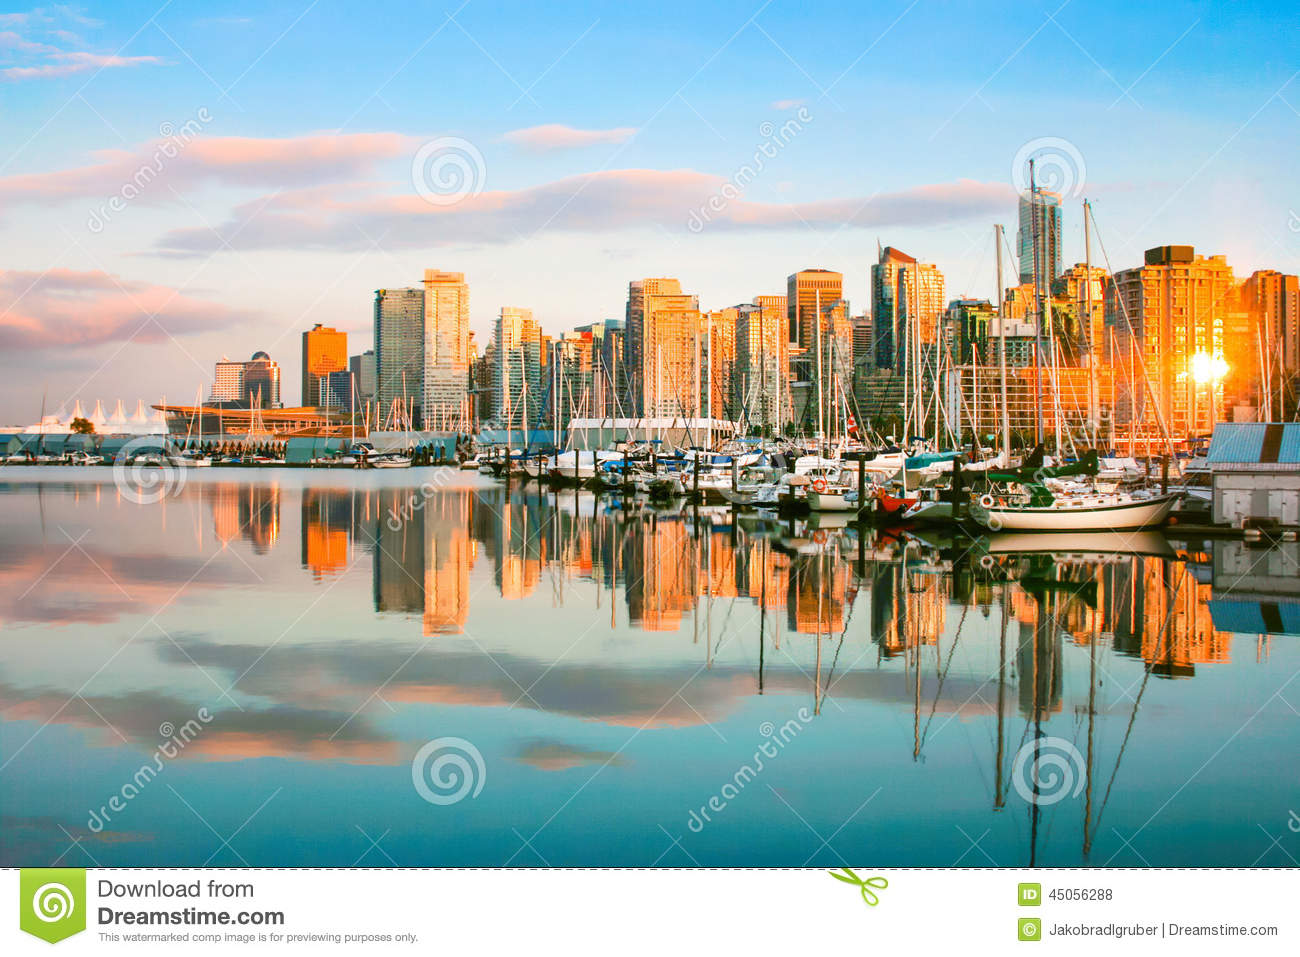 Vancouver skyline at sunset, BC, Canada